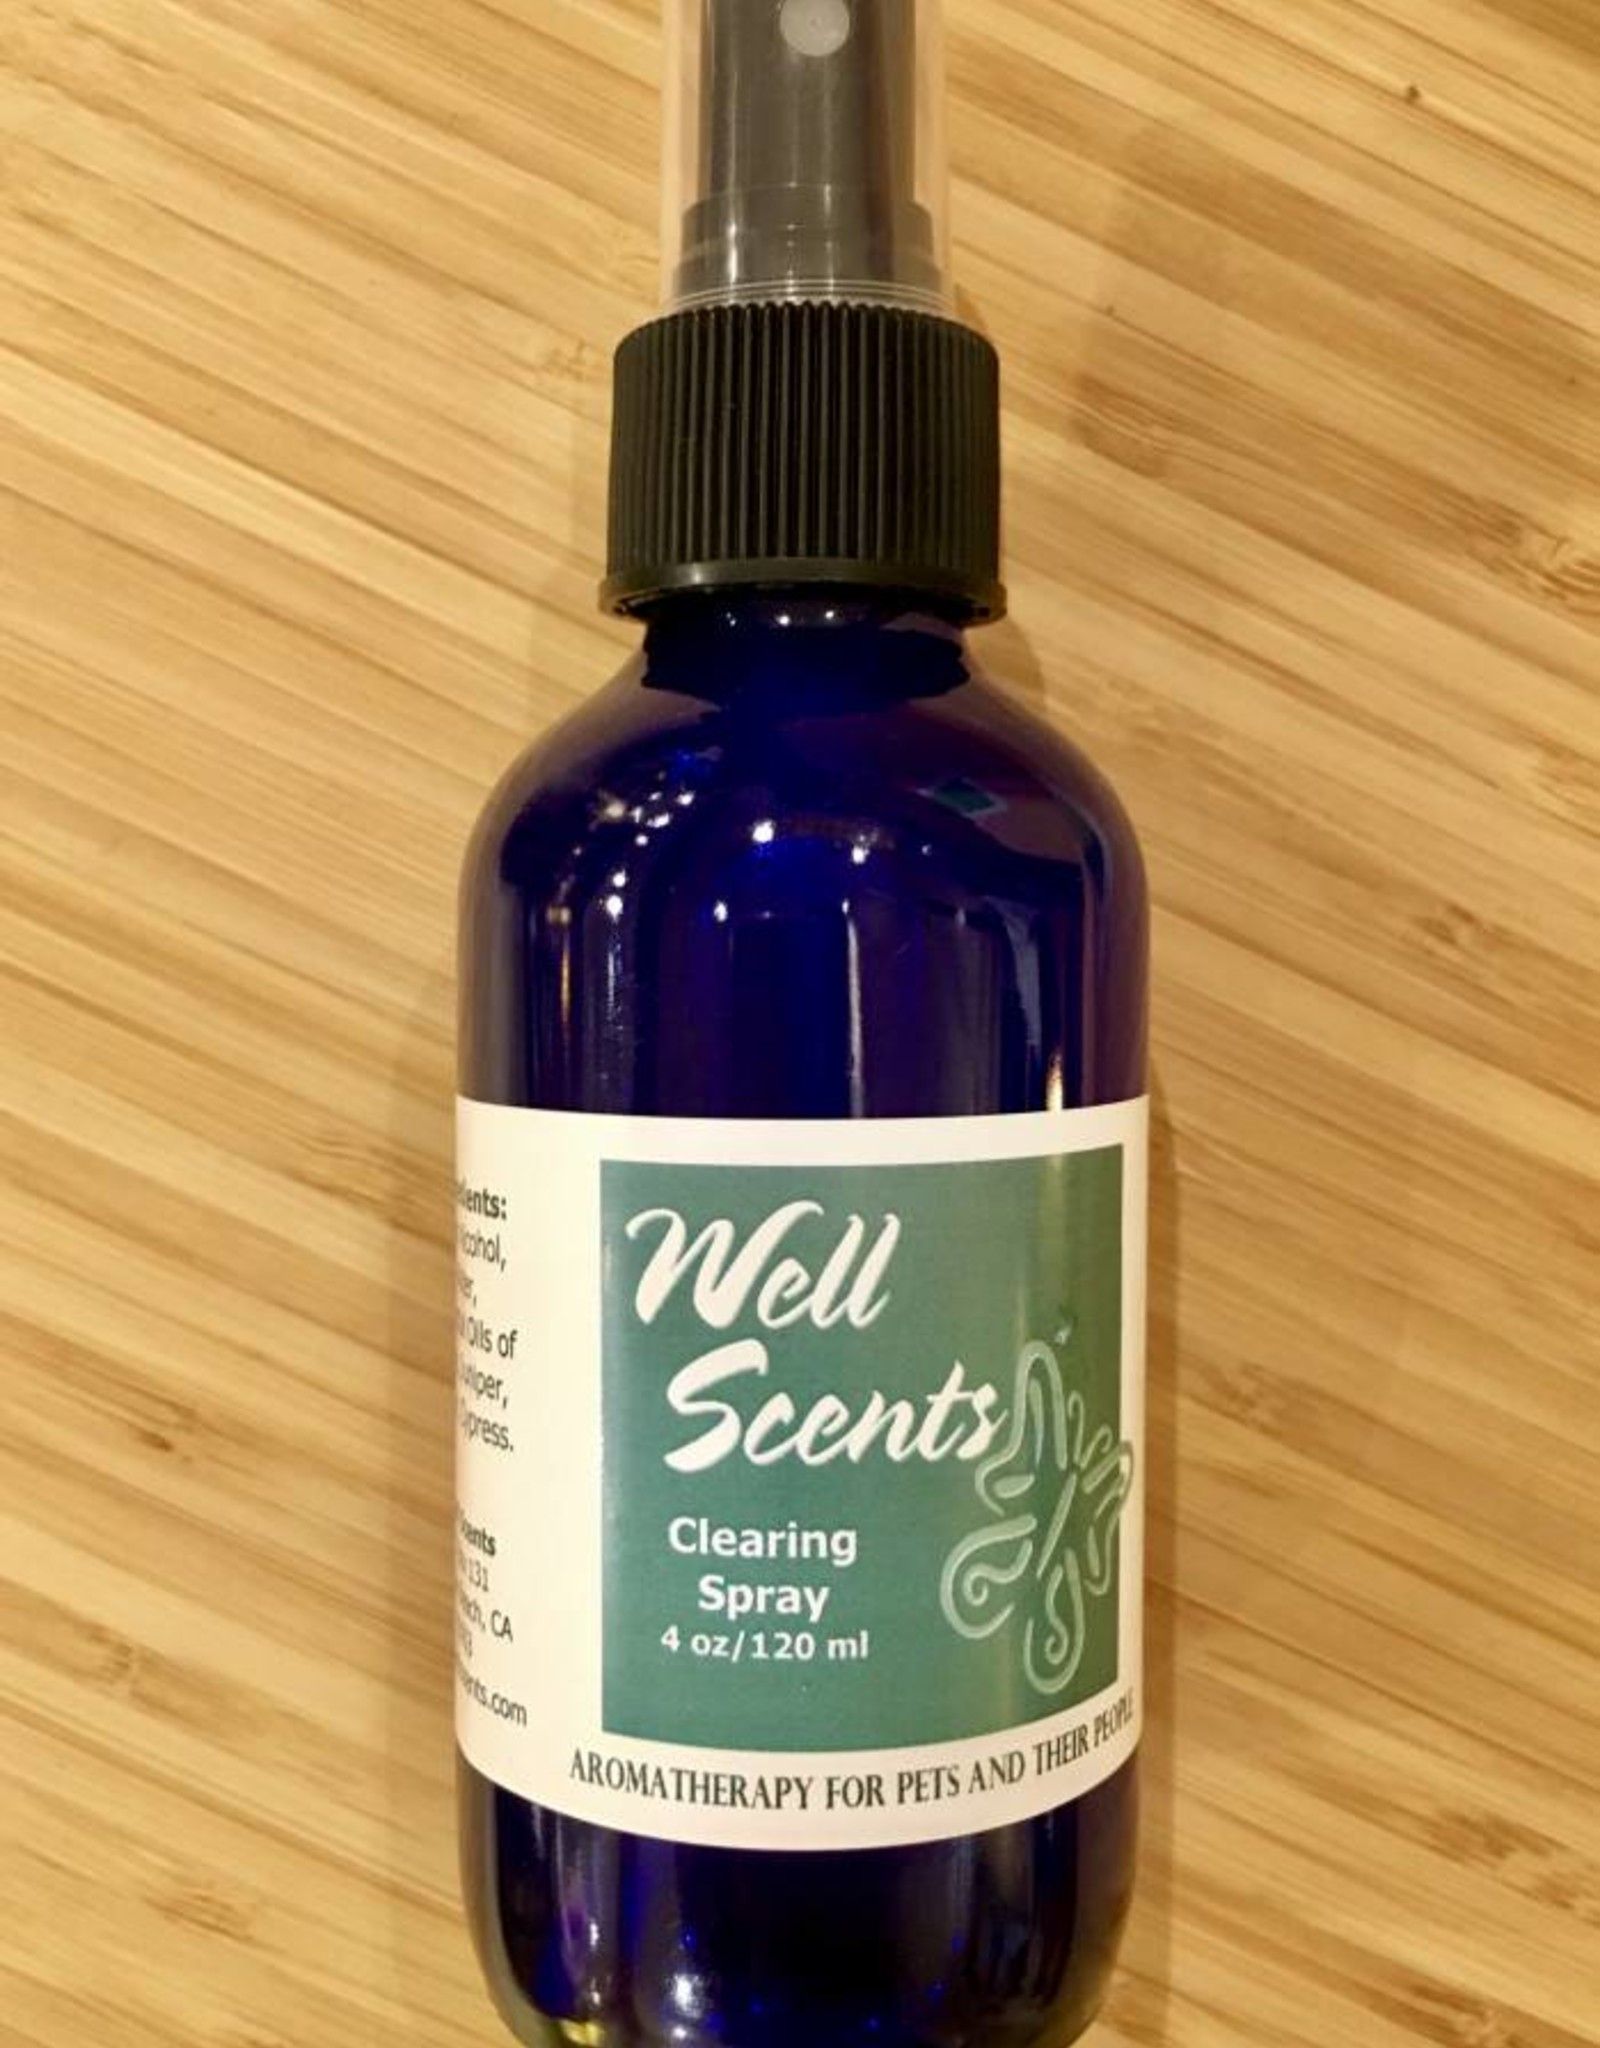 Well Scents Clearing Spray 4oz